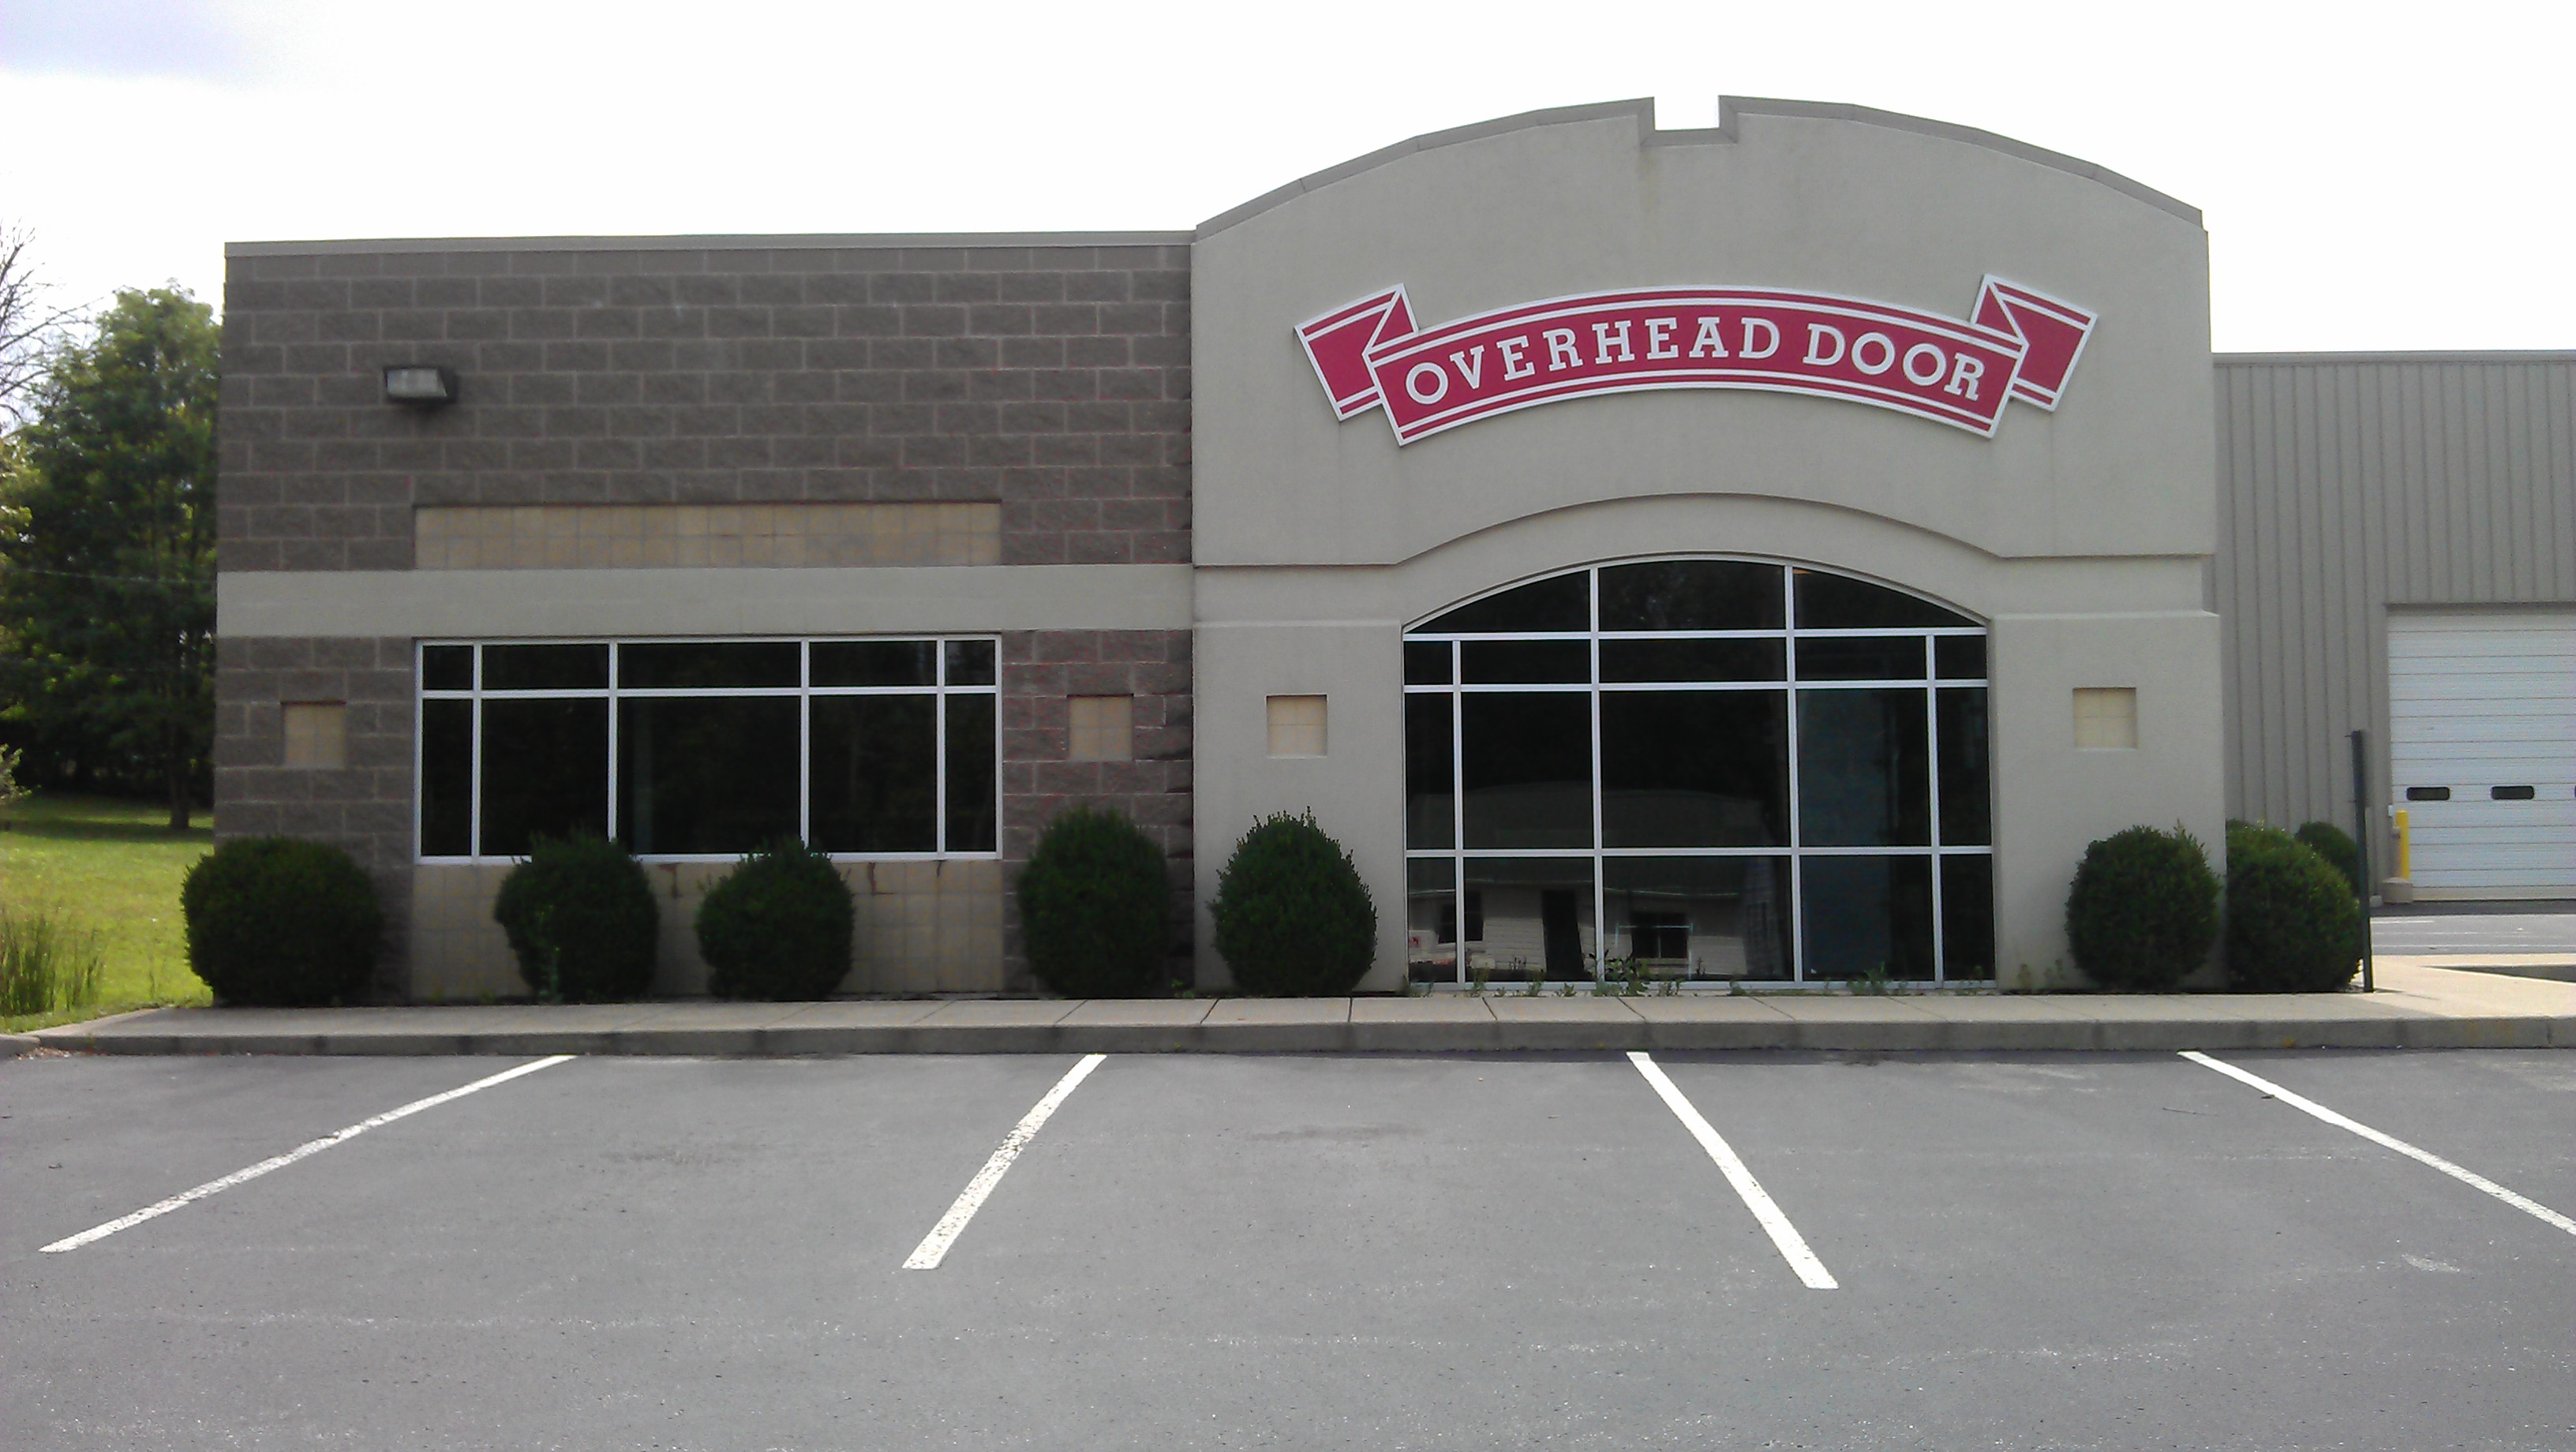 Overhead Door Showroom